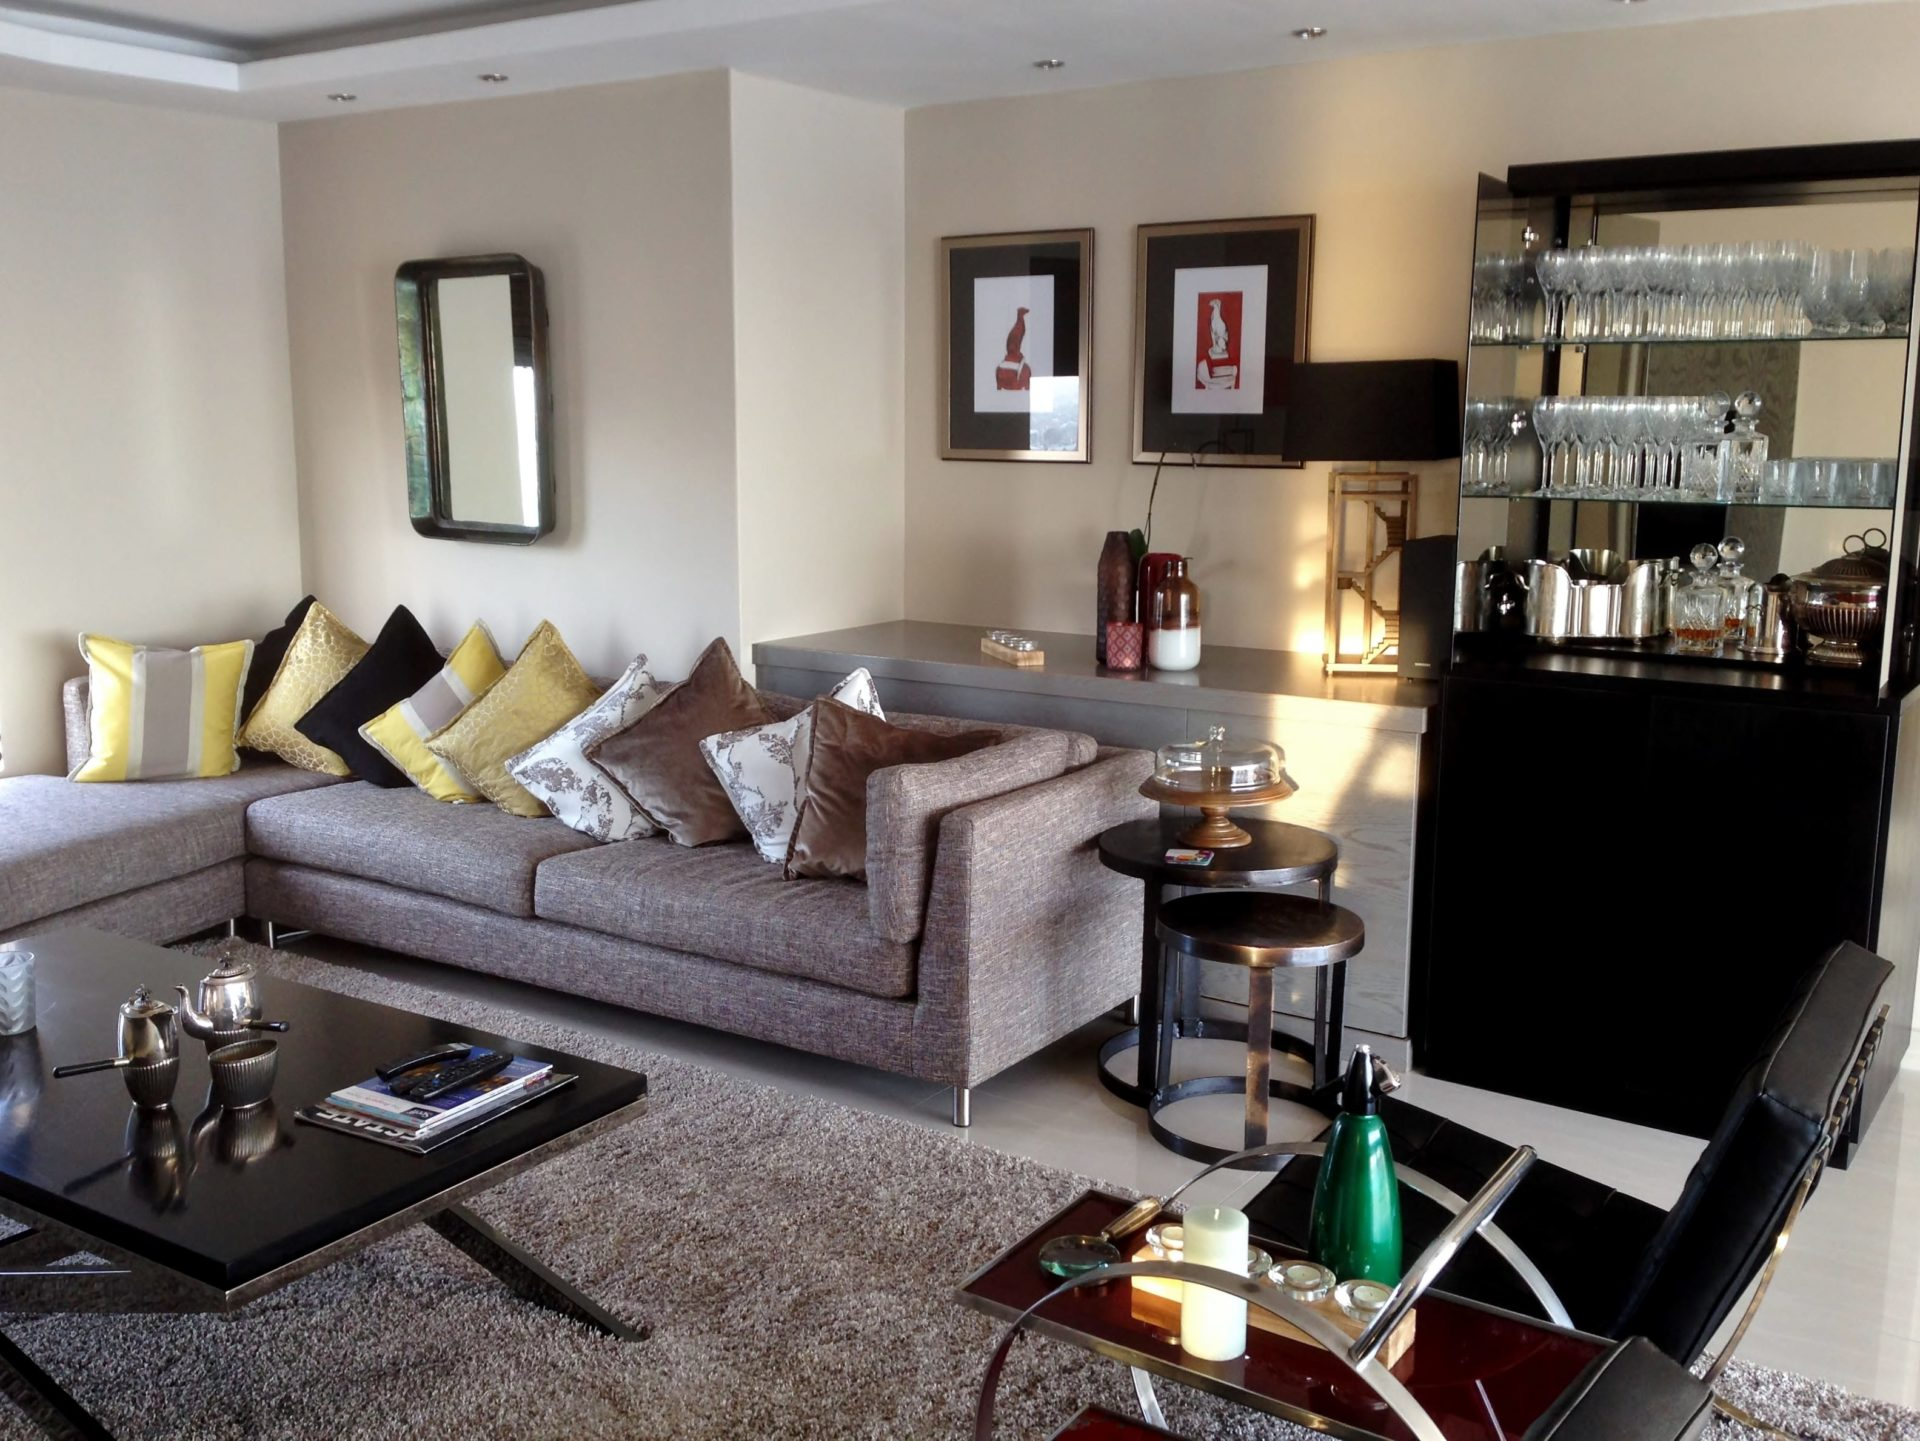 04_Project_Cape_Town_Penthouse_03_-_Copy